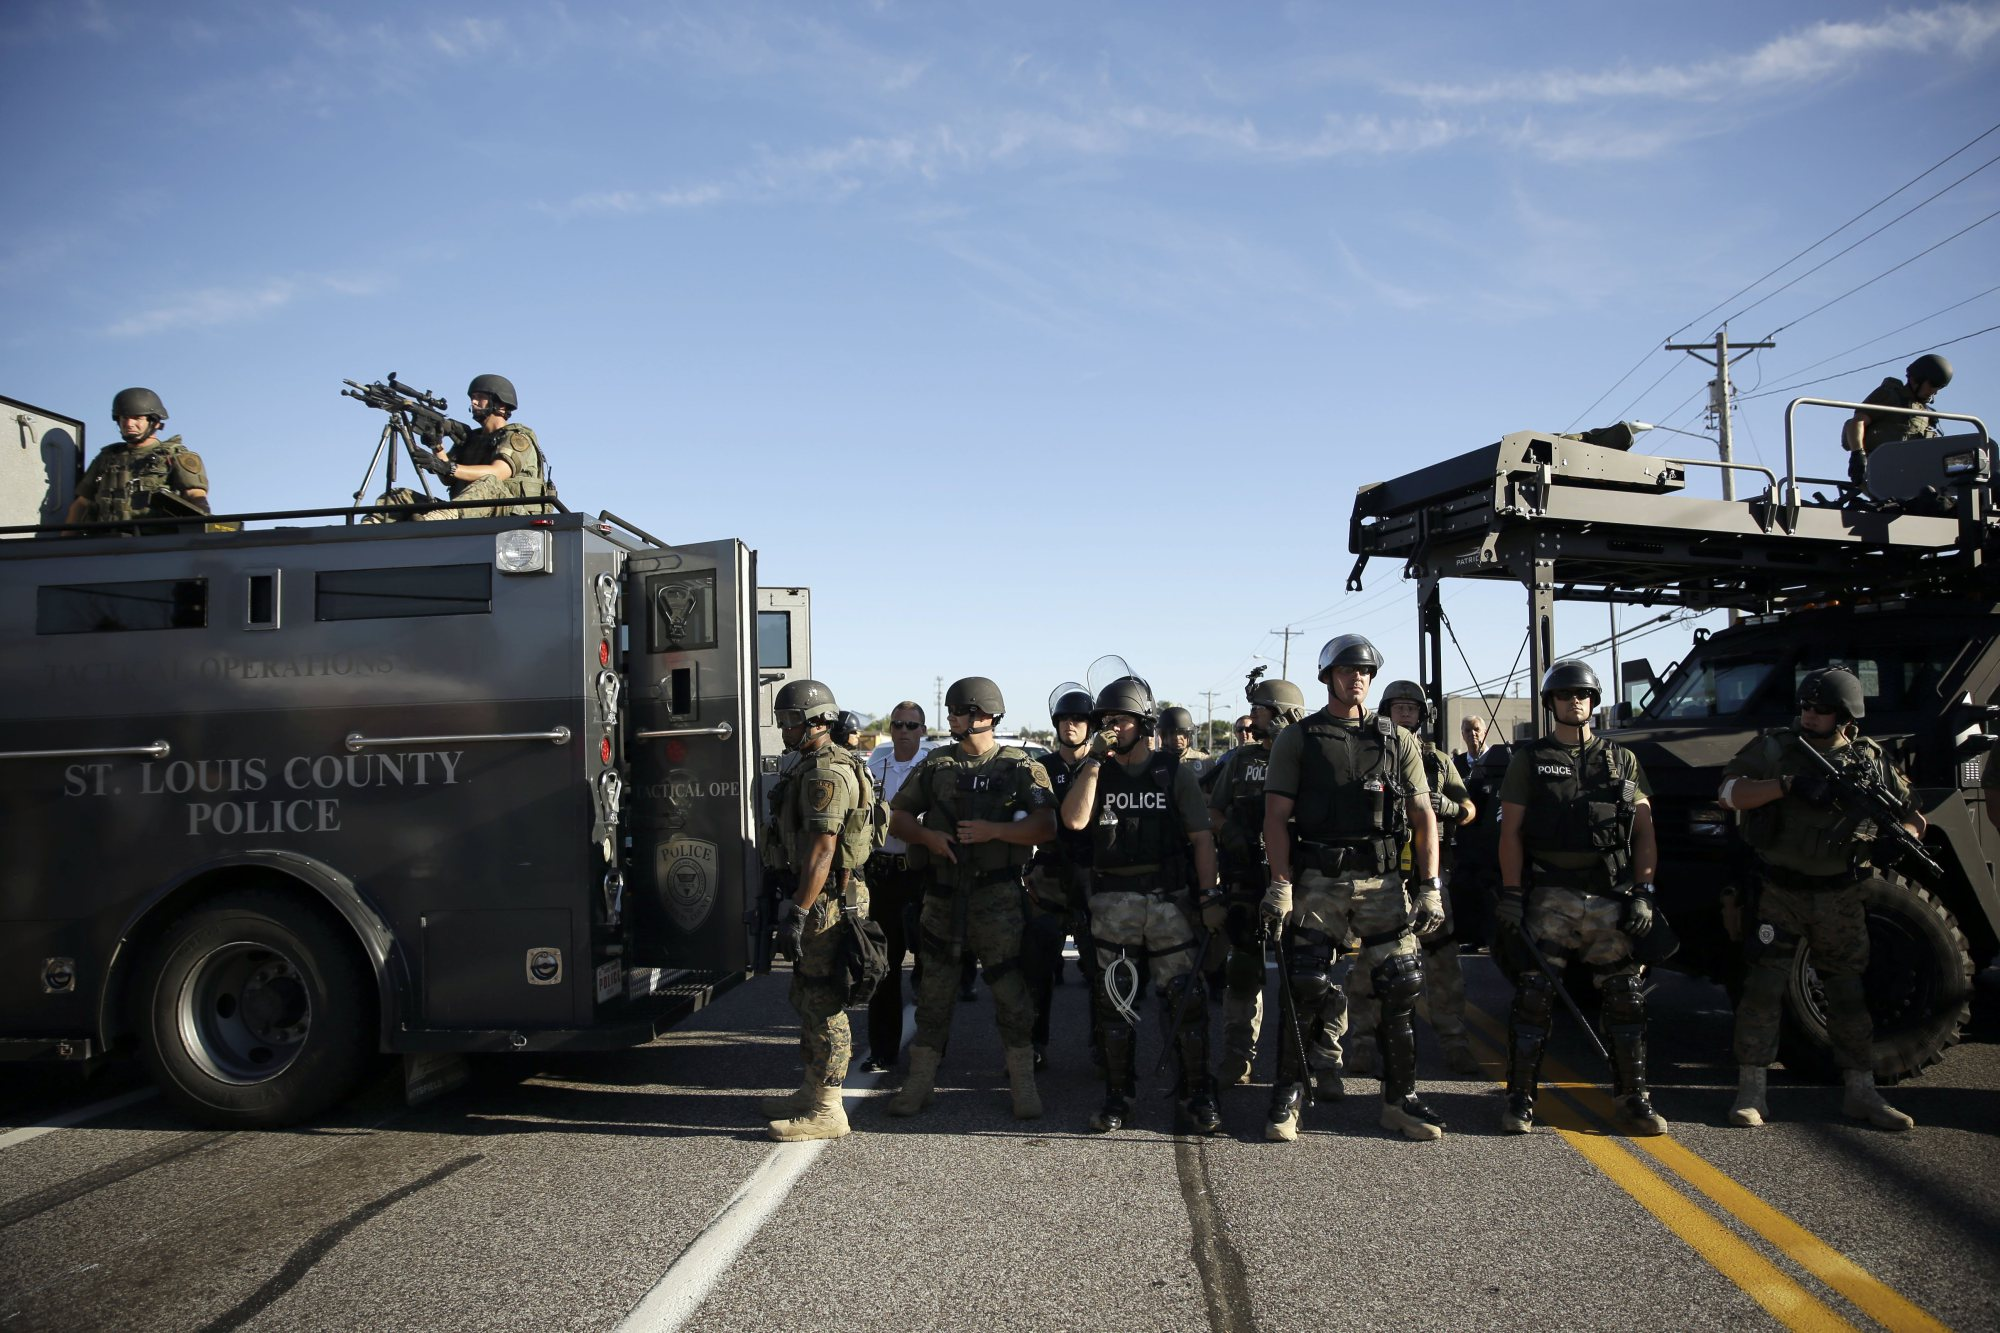 Police in riot gear watch protesters in Ferguson, Mo. on Aug. 13, 2014. (Photo: Jeff Roberson/AP)